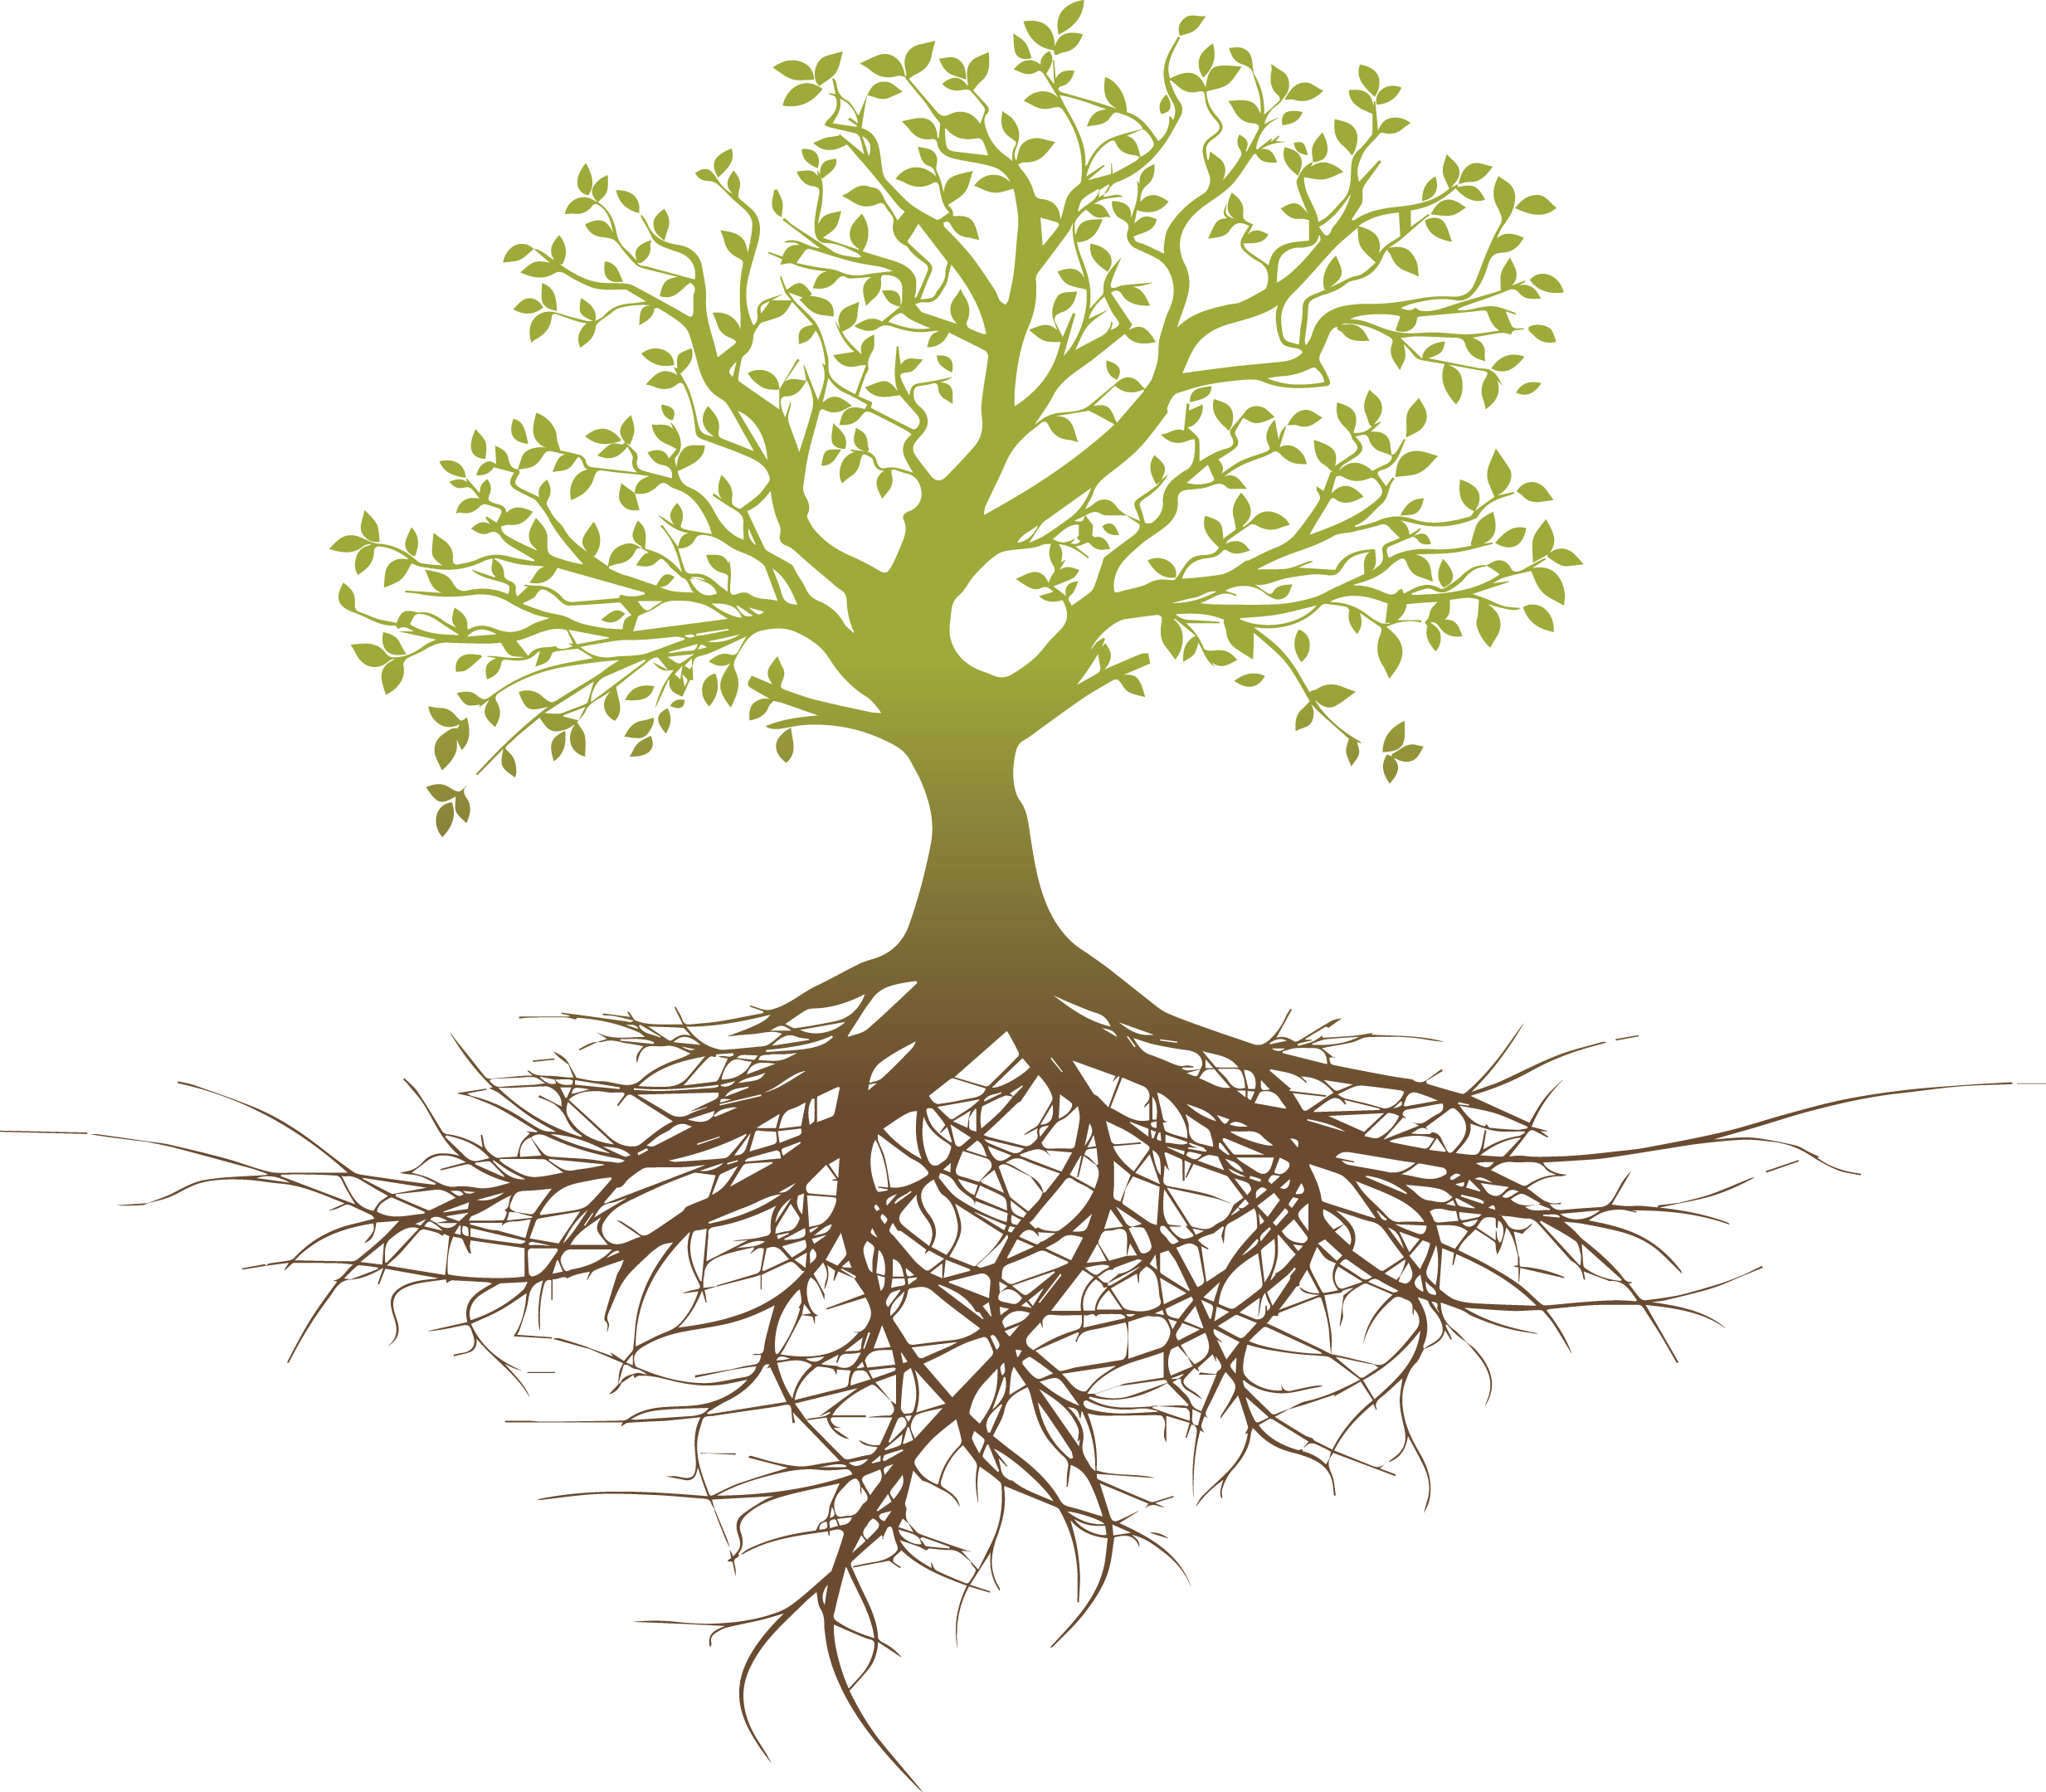 Roots clipart root system. Tree oak thinking png